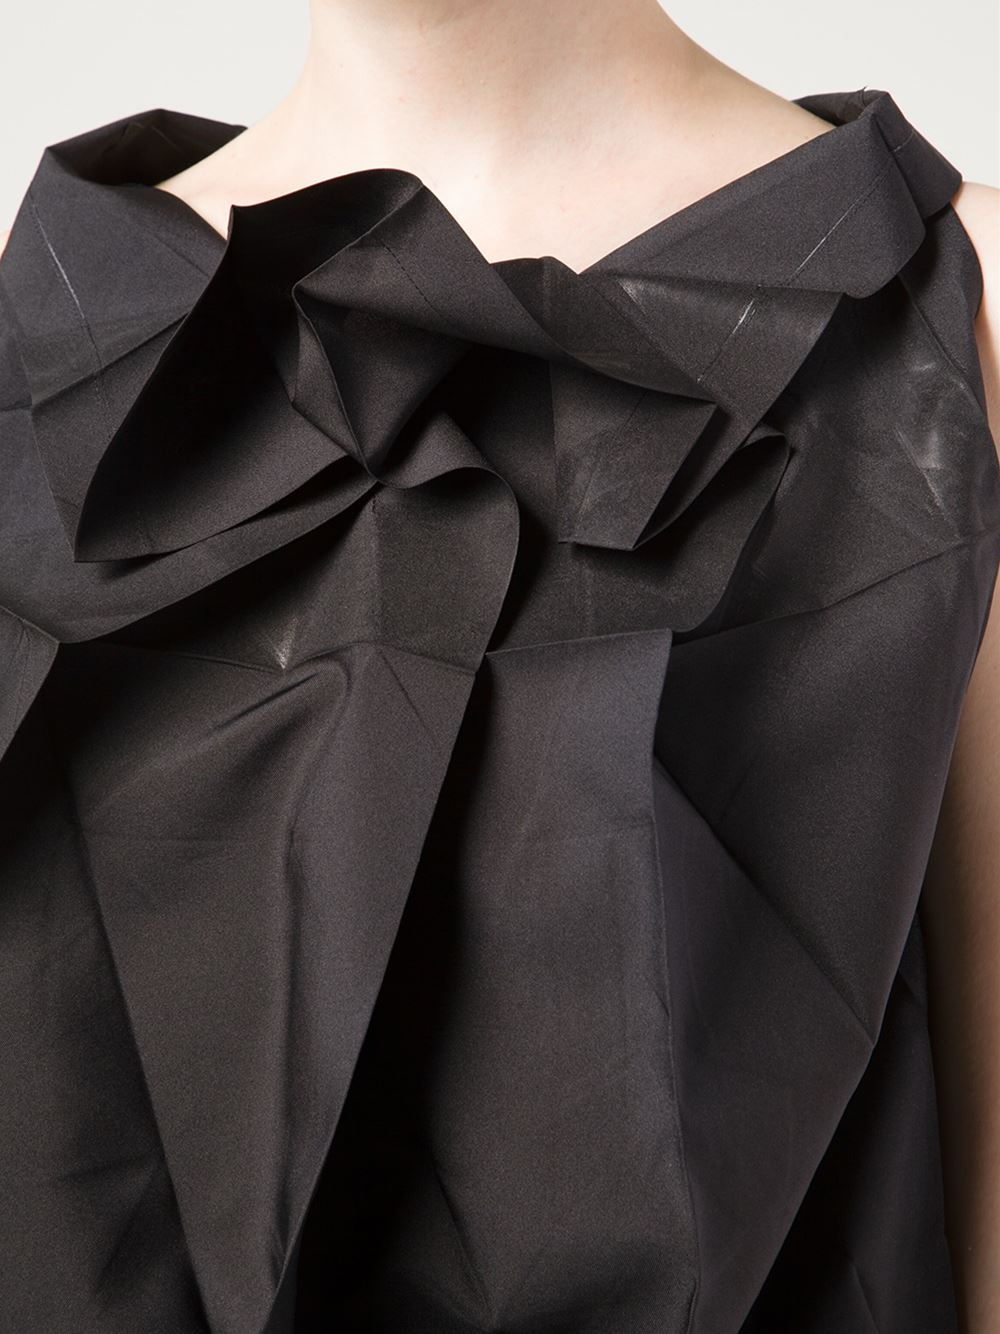 132 Best Images About Golf R On Pinterest: 132 5. Issey Miyake Origami Style Sleeveless Top In